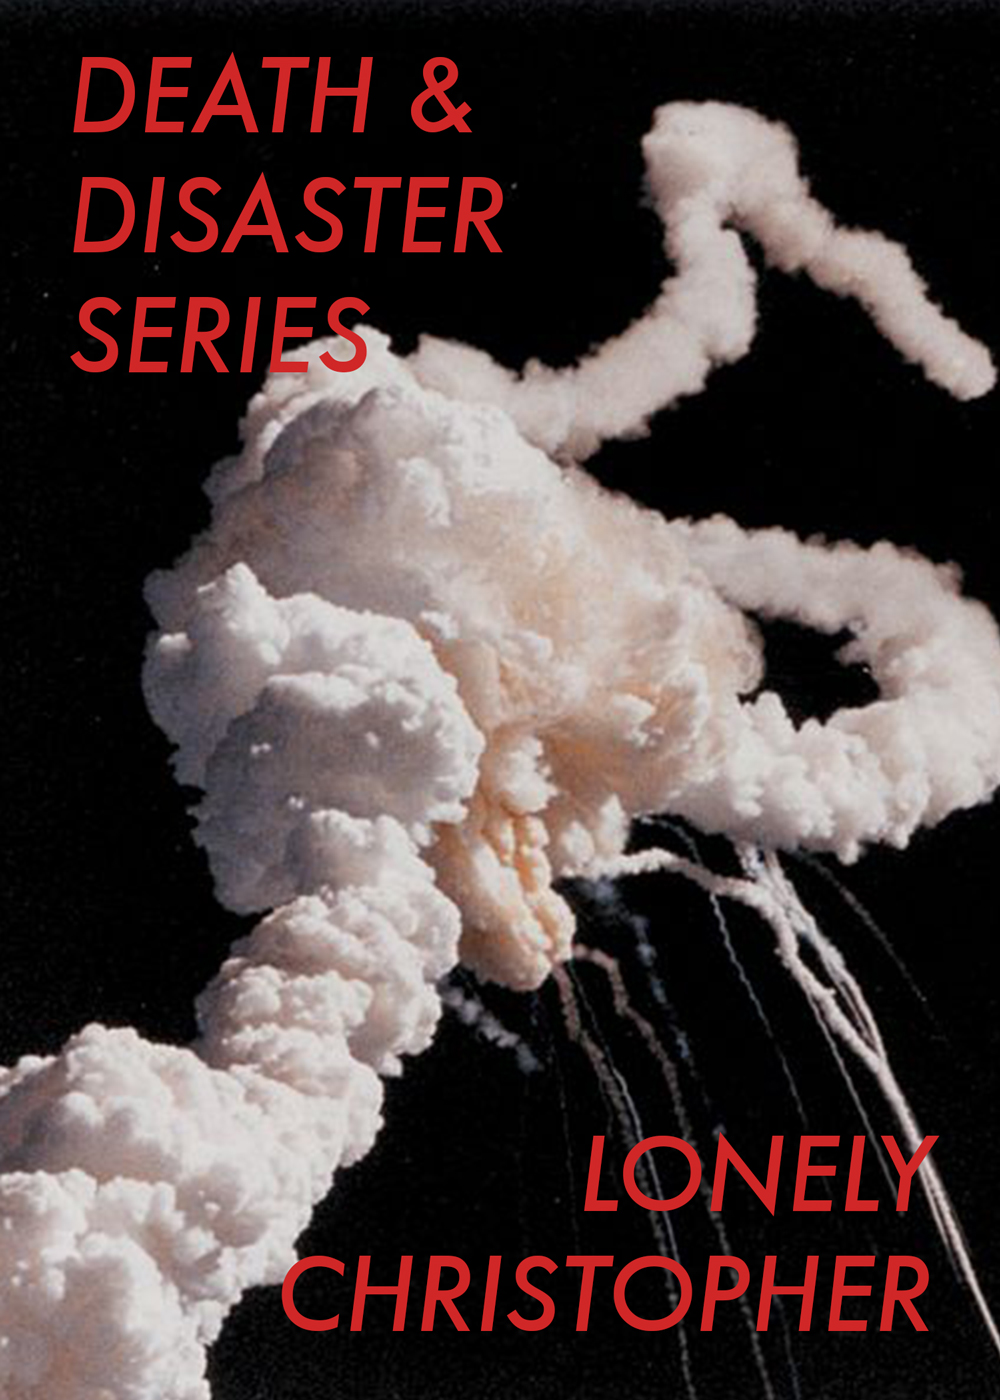 Lonely Christopher's 'Death & Disaster Series' Launch with Uche Nduka and Ariana Reines